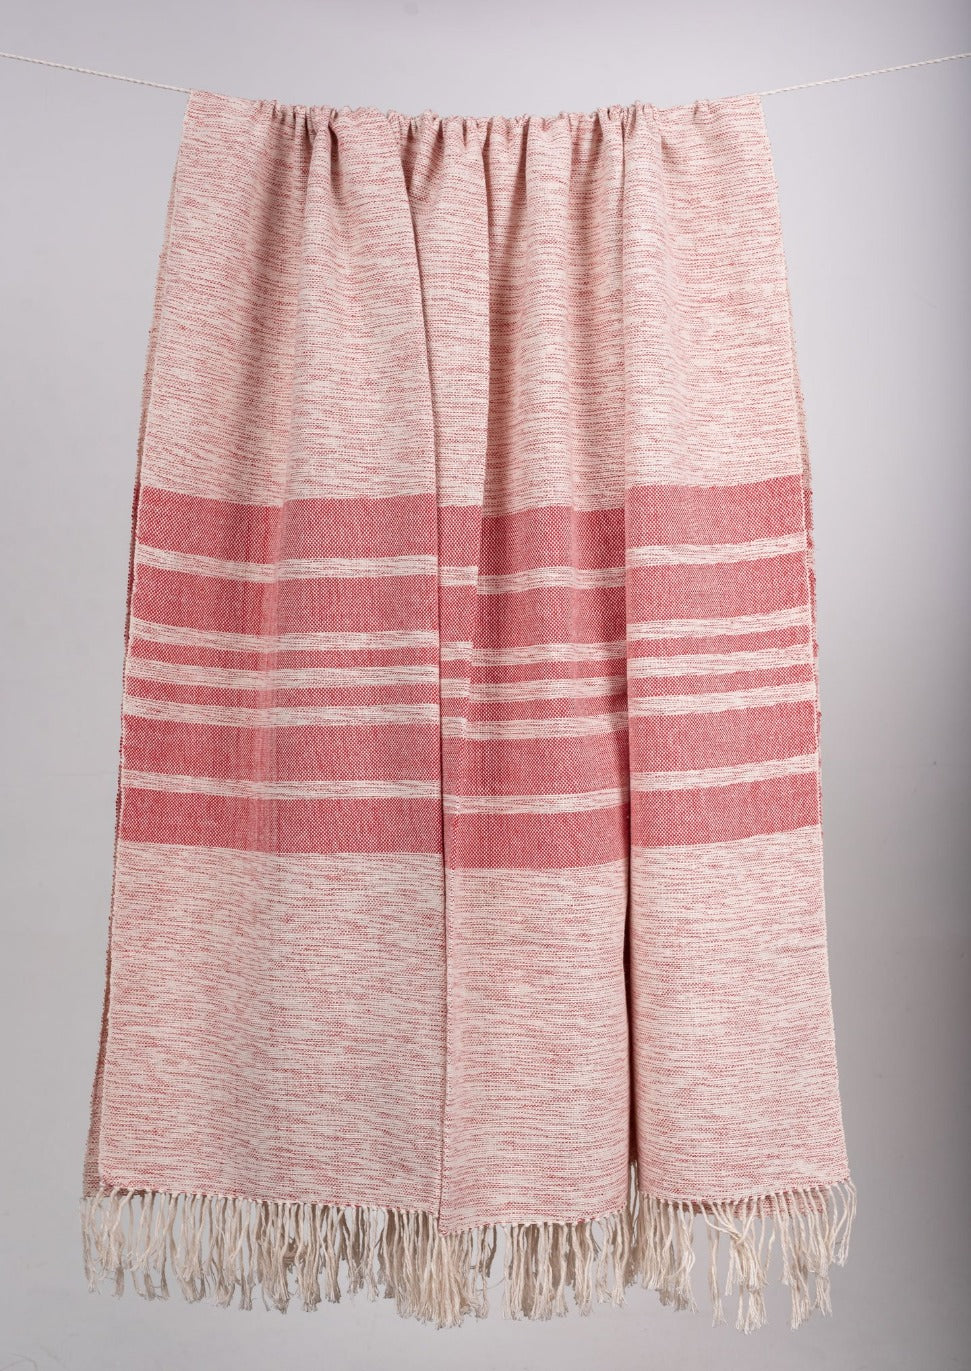 Cherry Blossom Striped Cotton Throws & Blankets  (4 sizes)